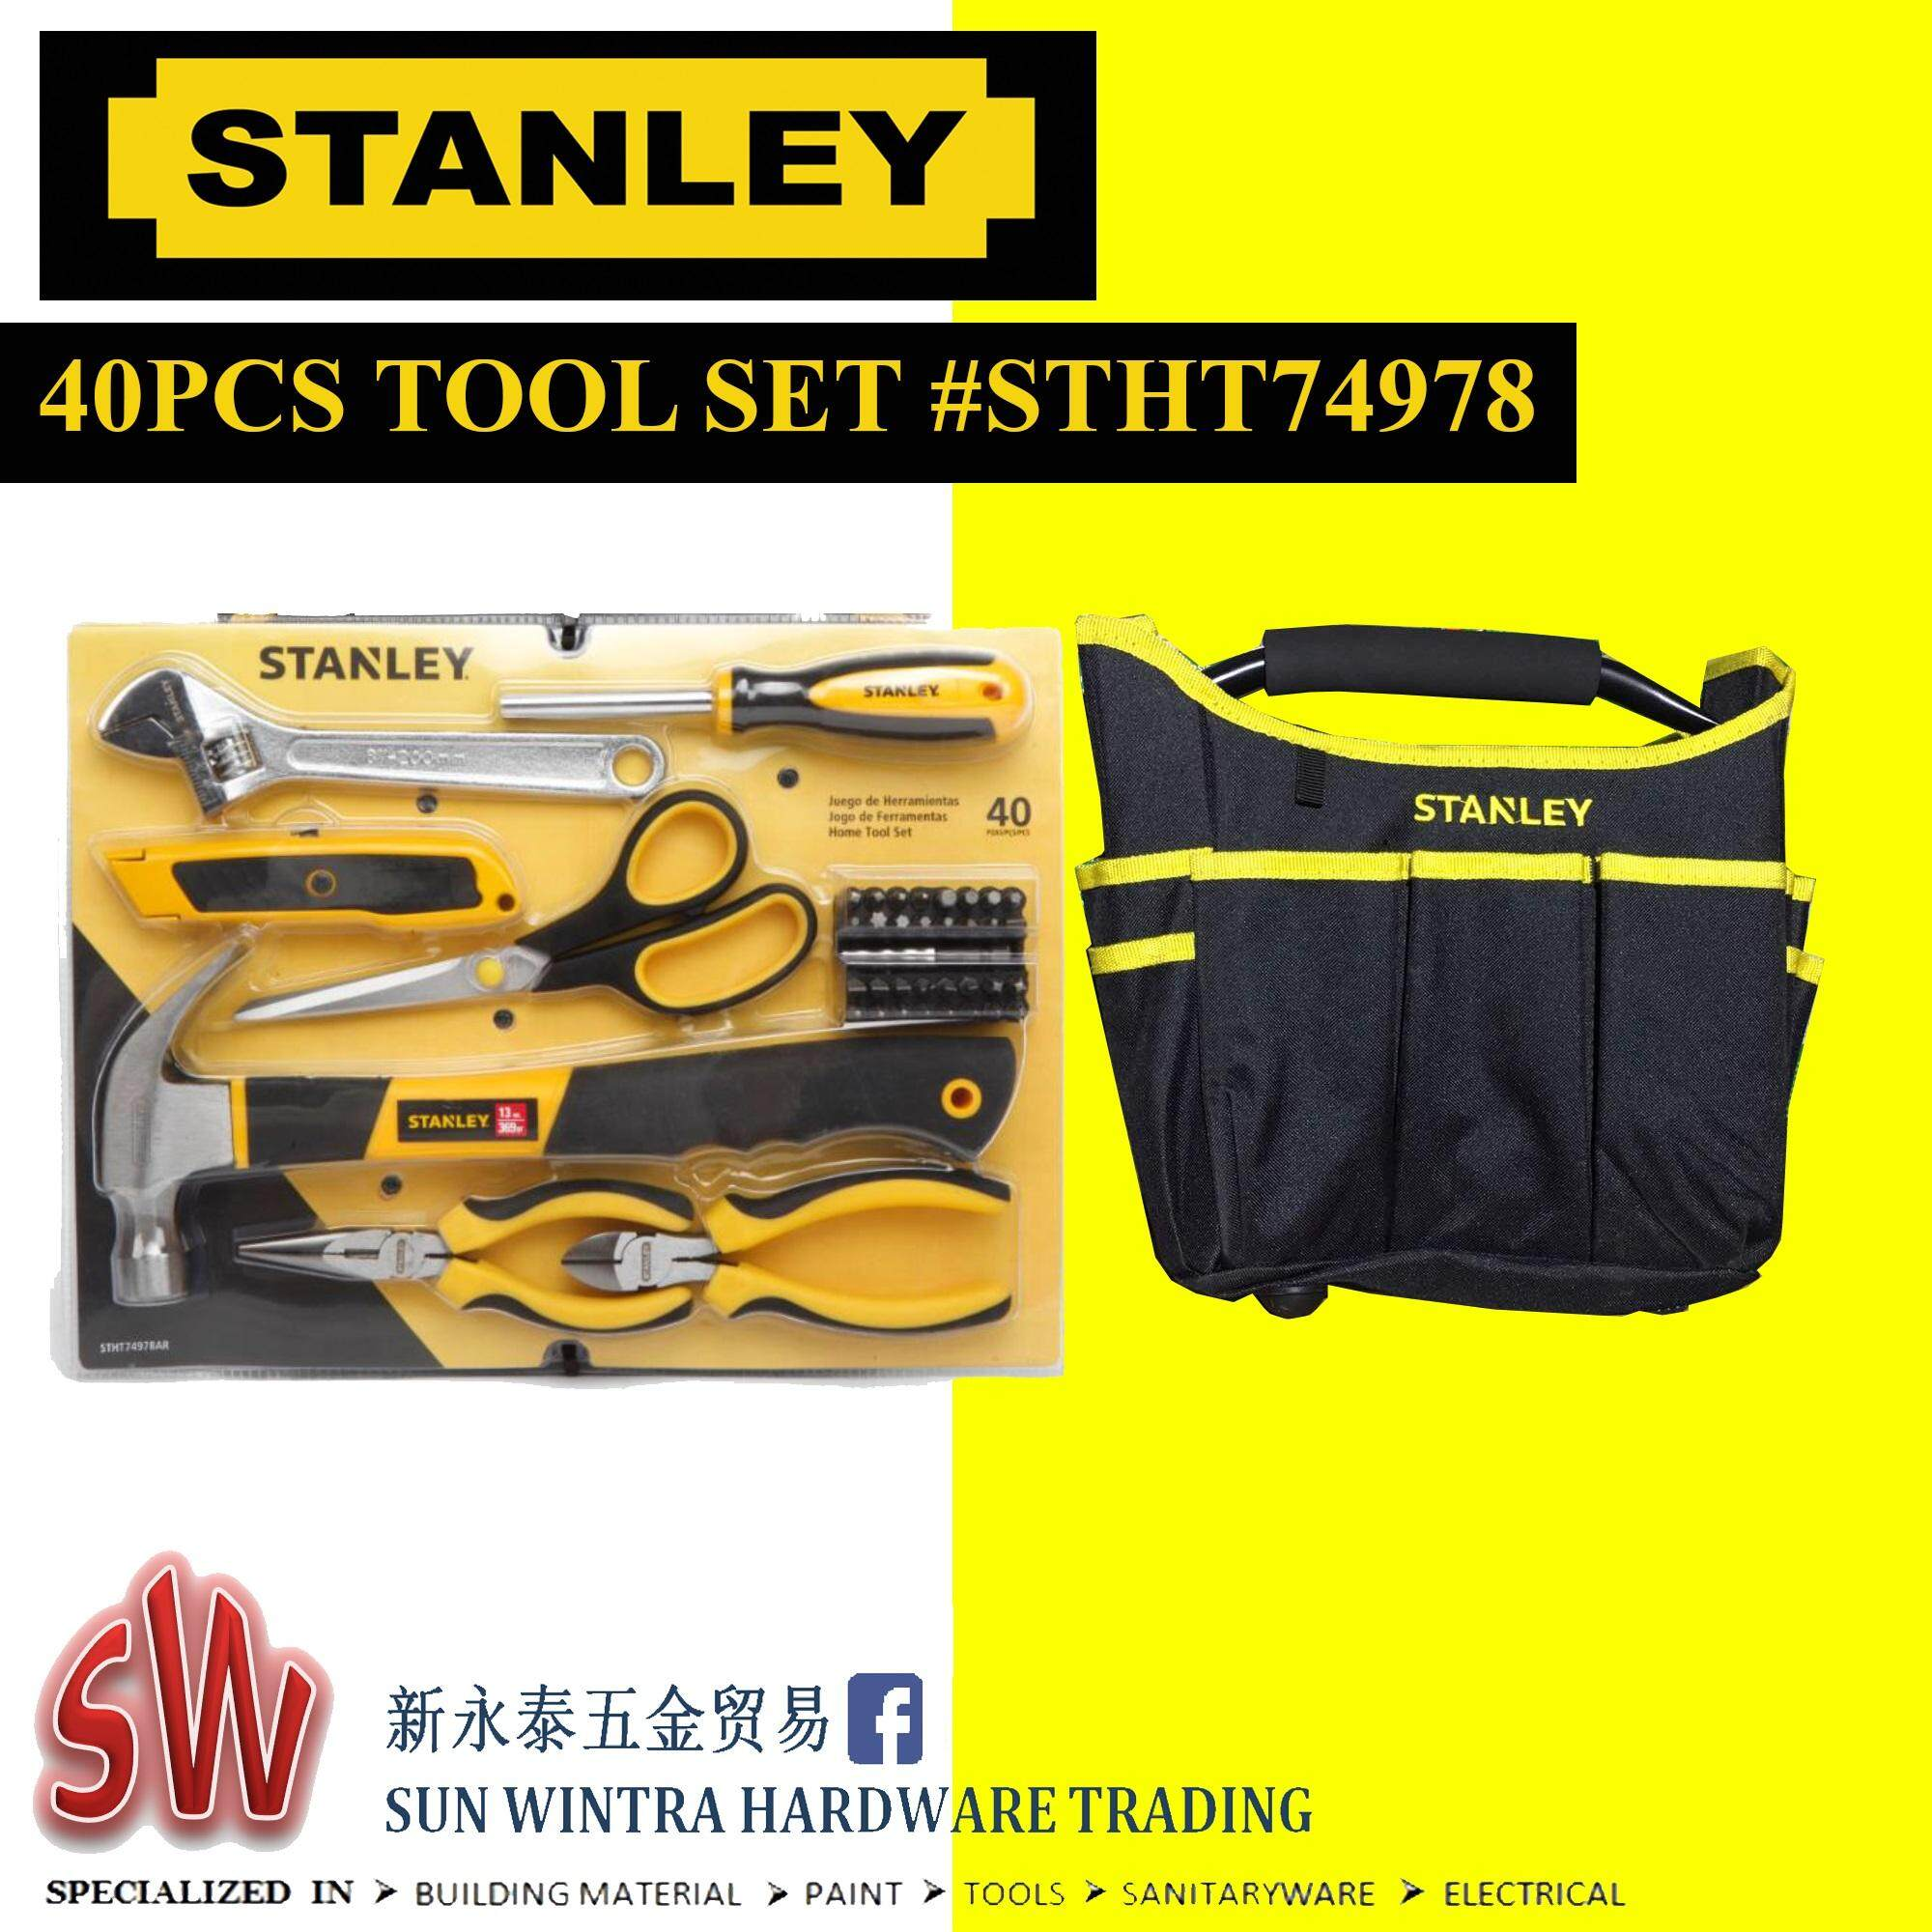 Tool Set General 25pcs Stanley 92 006 Stht74981hand Daftar Update Harga Terbaru Indonesia Source 40pcs Home With